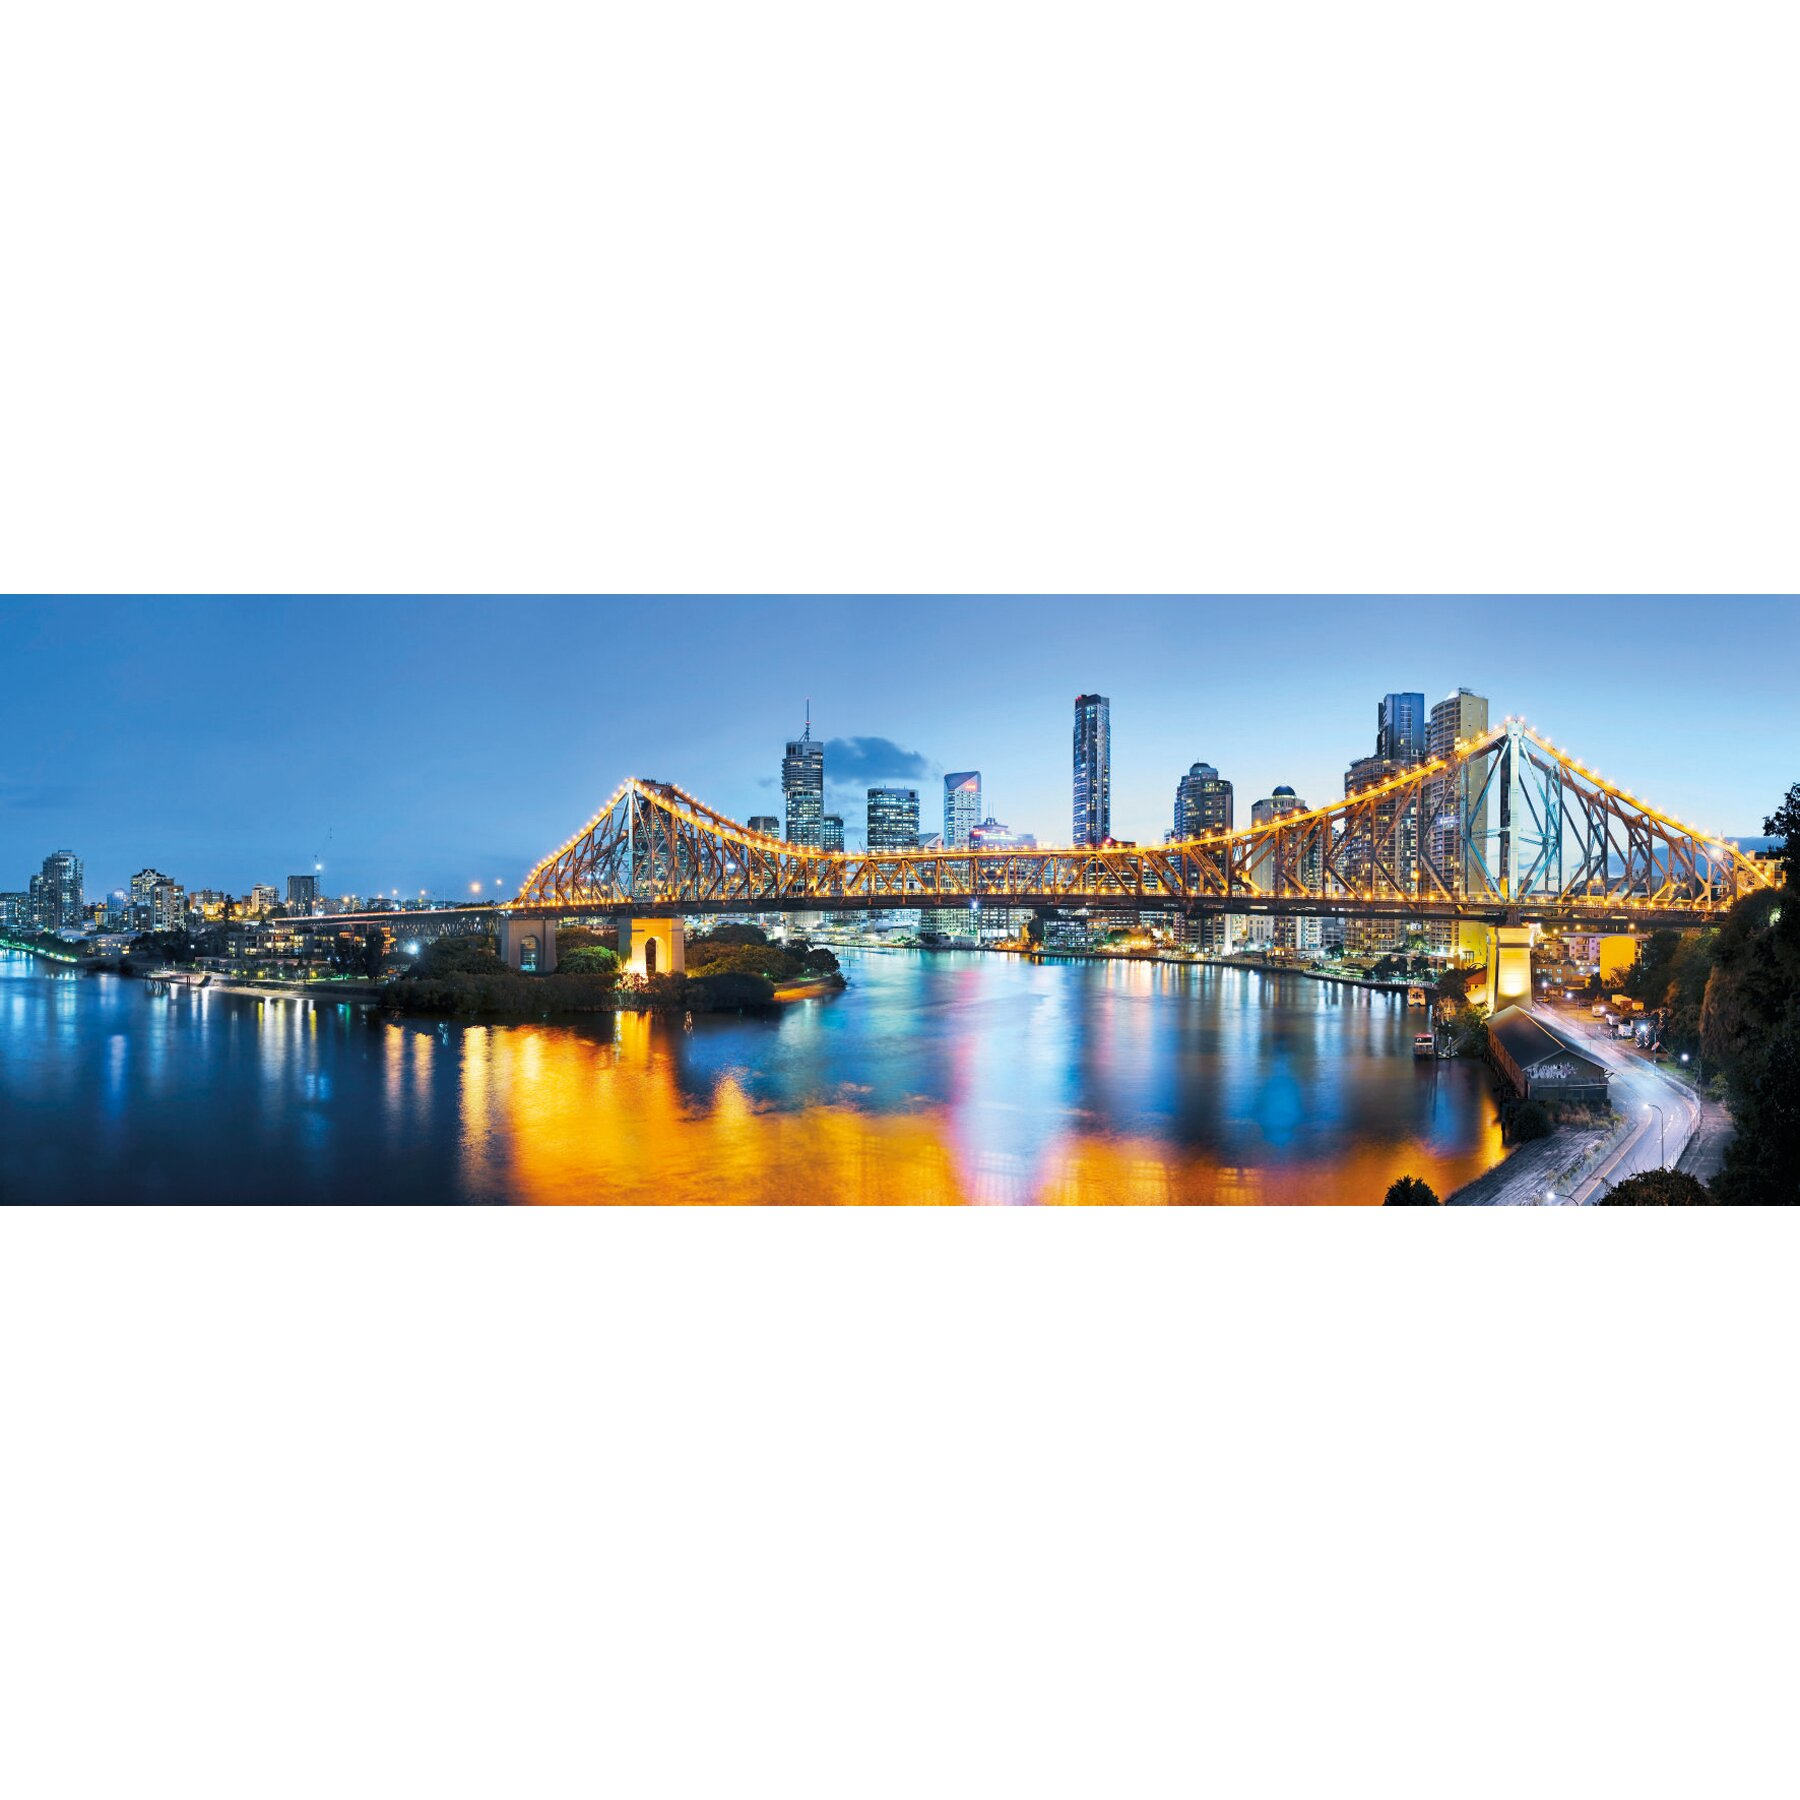 komar brisbane wall mural wayfair brisbane australia love queensland wall art brisbane